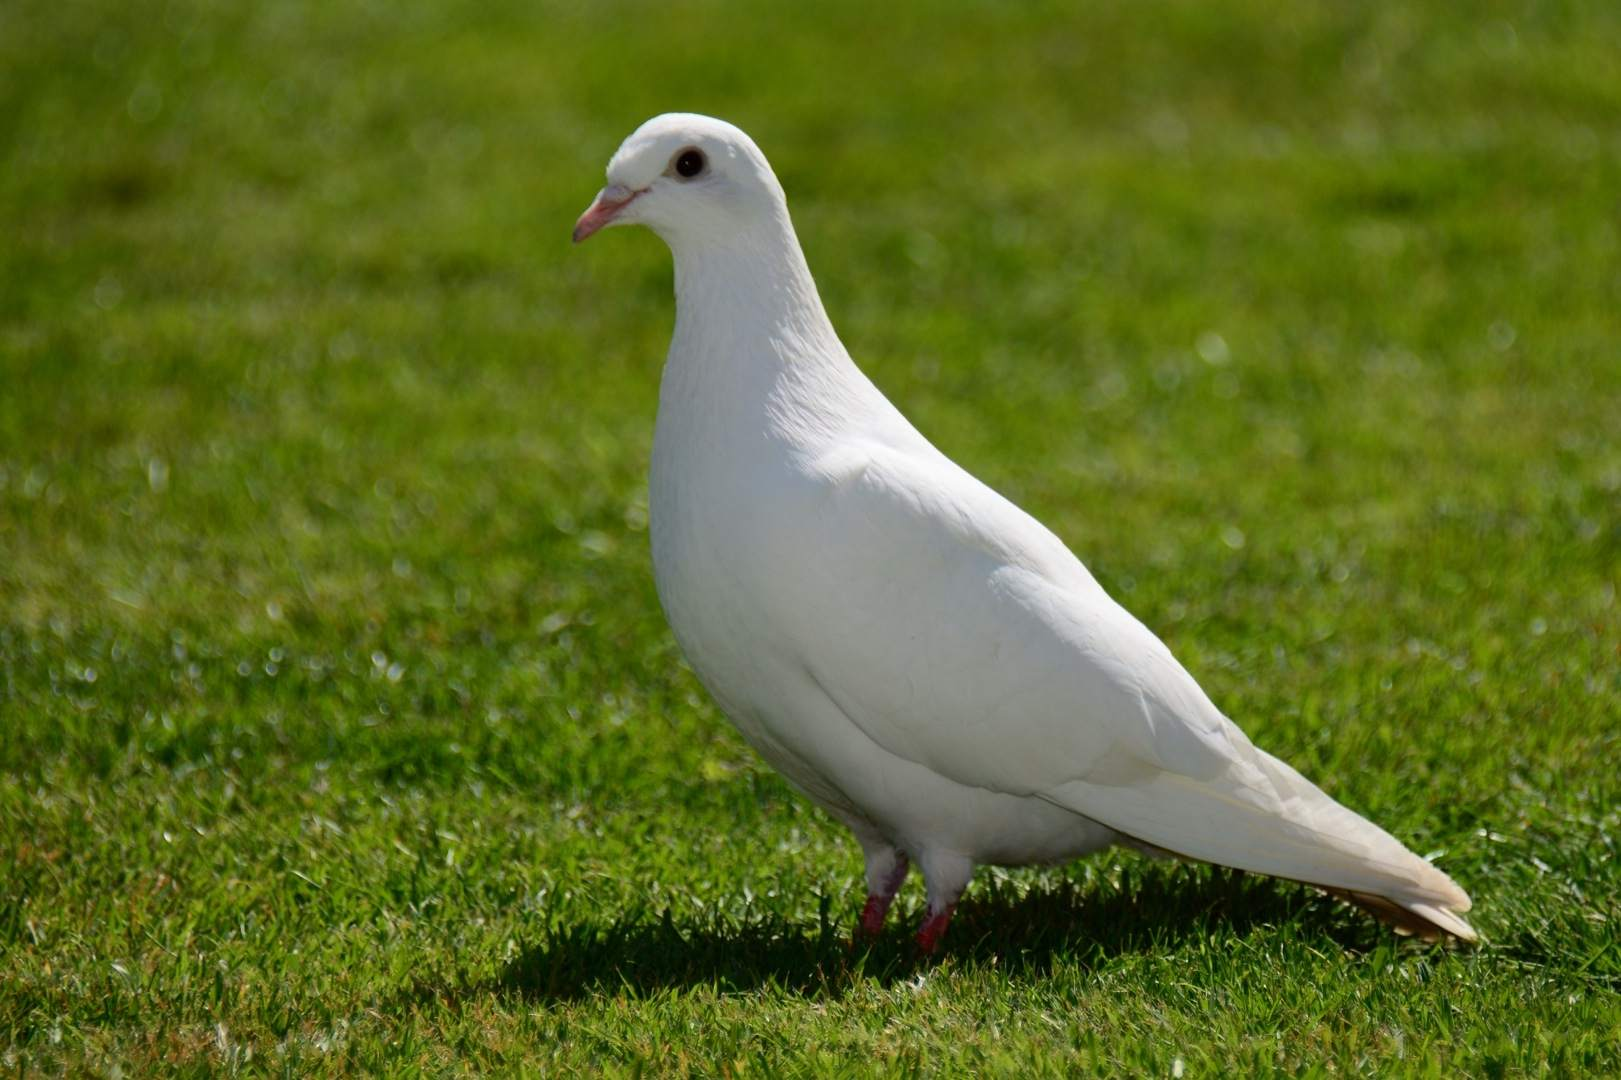 A dove is a type of columbiforme